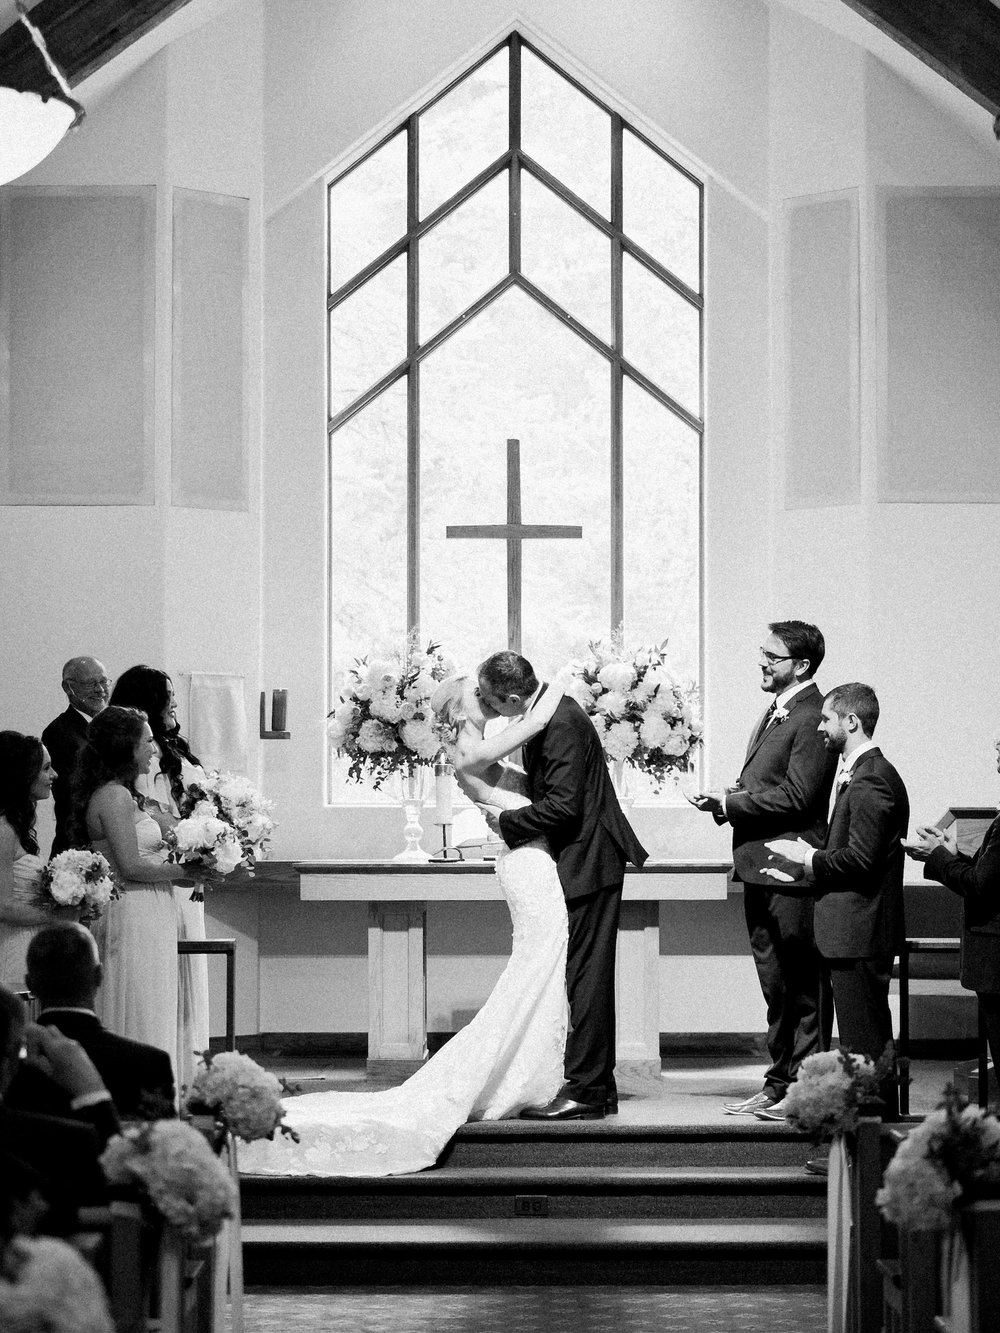 First Kiss at Vail Interfaith Chapel during a wedding ceremony